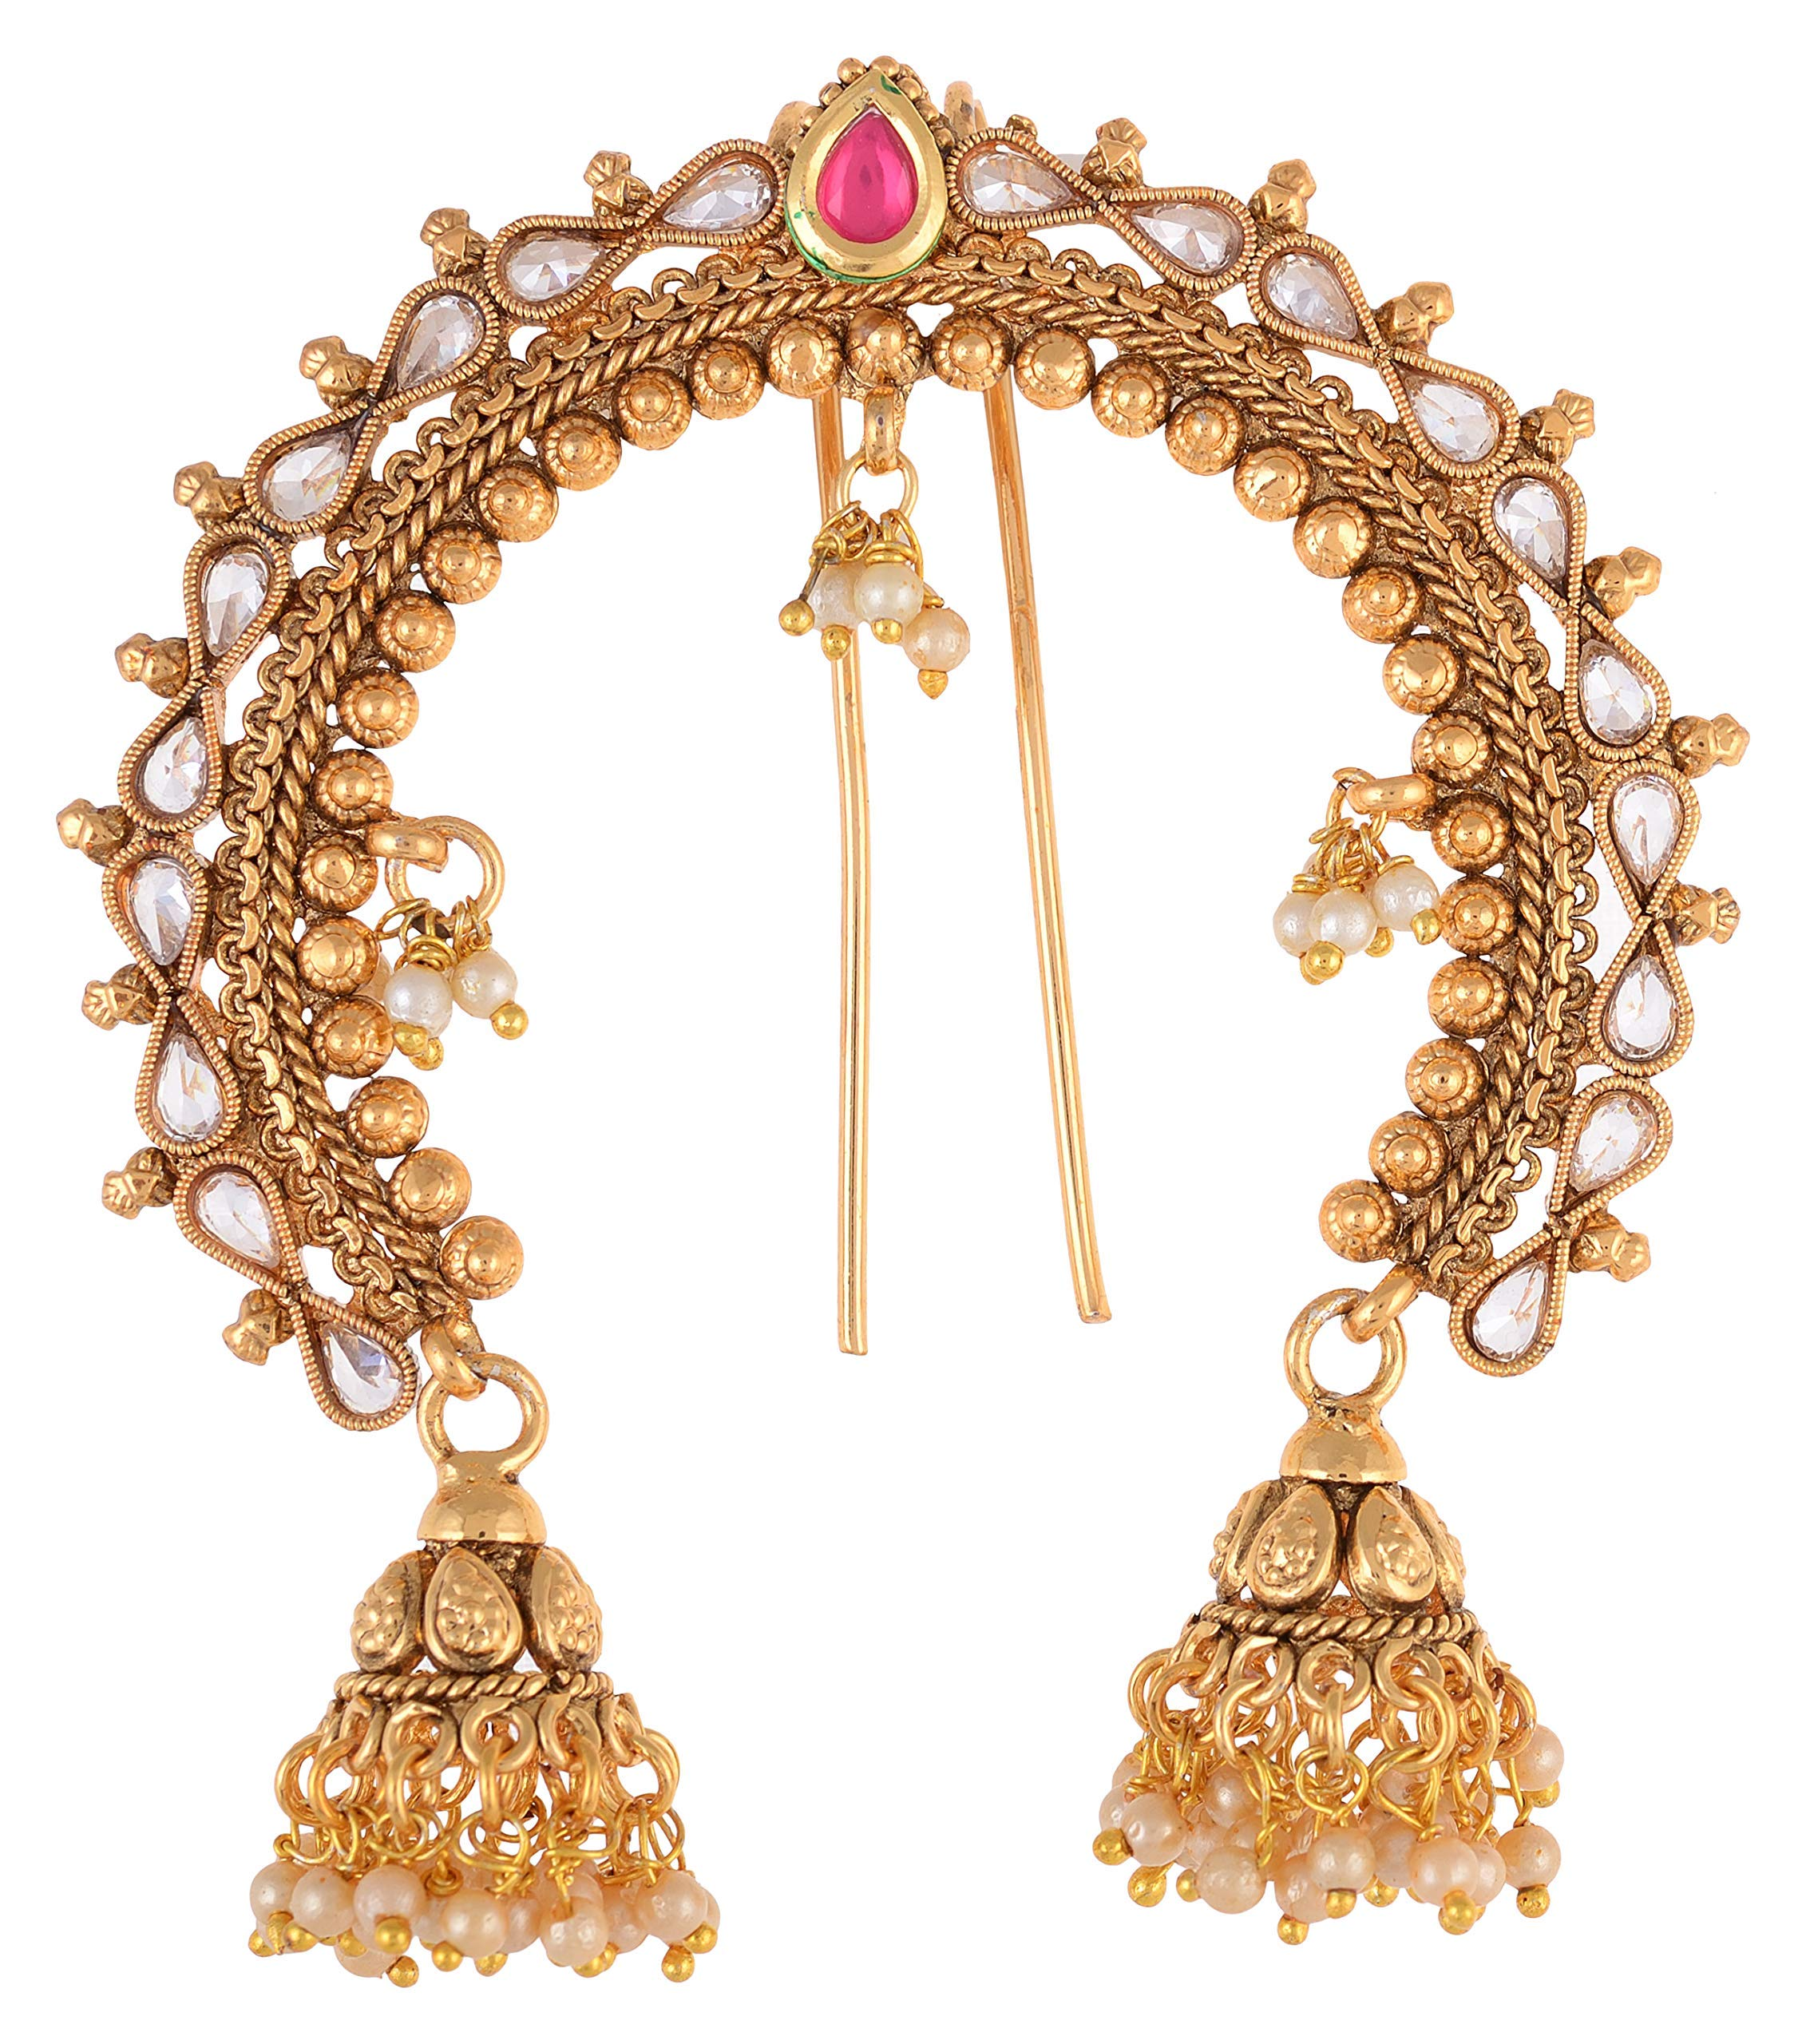 AakarShana Jewels Traditional Indian Look Hair Accessories Best Match for Bollywood Dance Looks Like Natural Flowers Party Accessories for Weddings Proms Parties or Other Occassions by AakarShan jewels